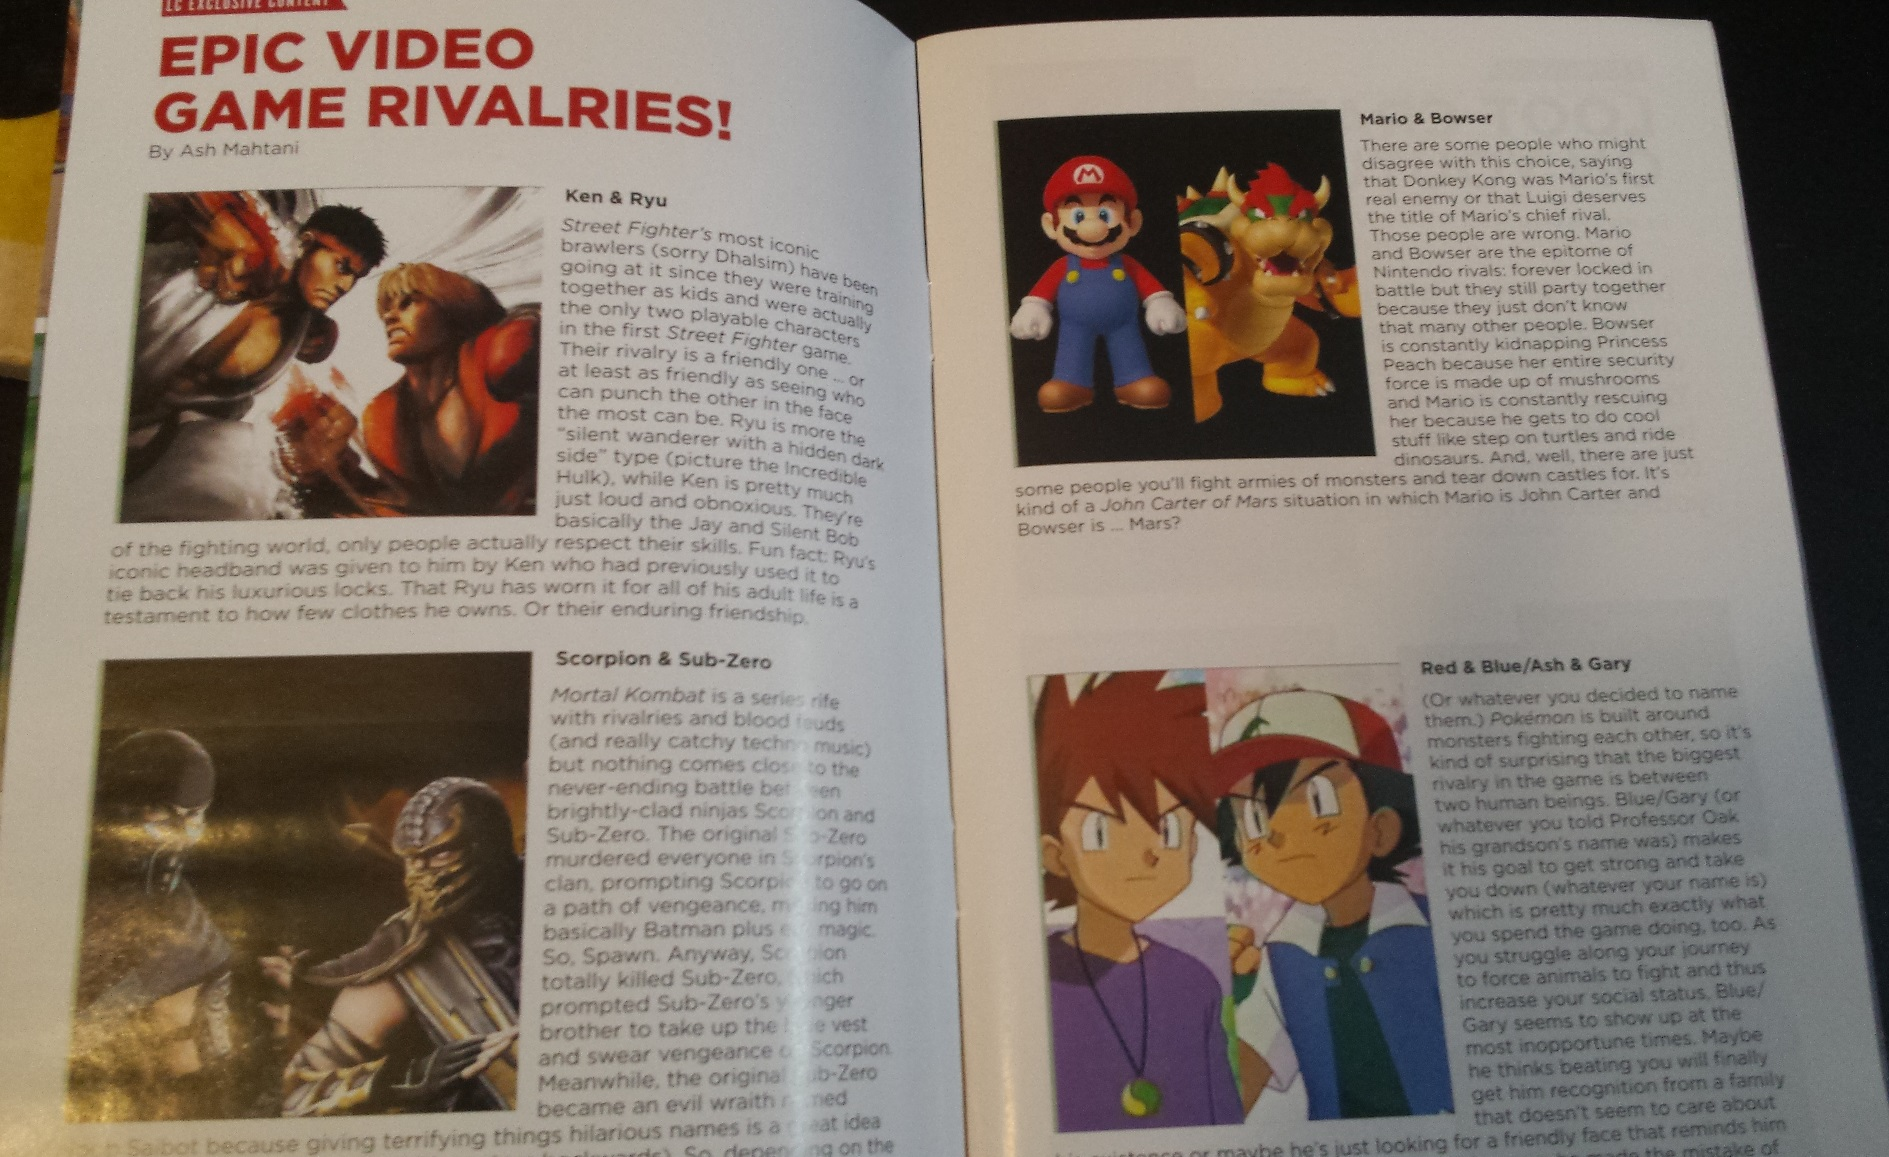 A peek inside loot crate magazine, magazine and pin, loot crate, loot crate review, november loot crate, unboxing